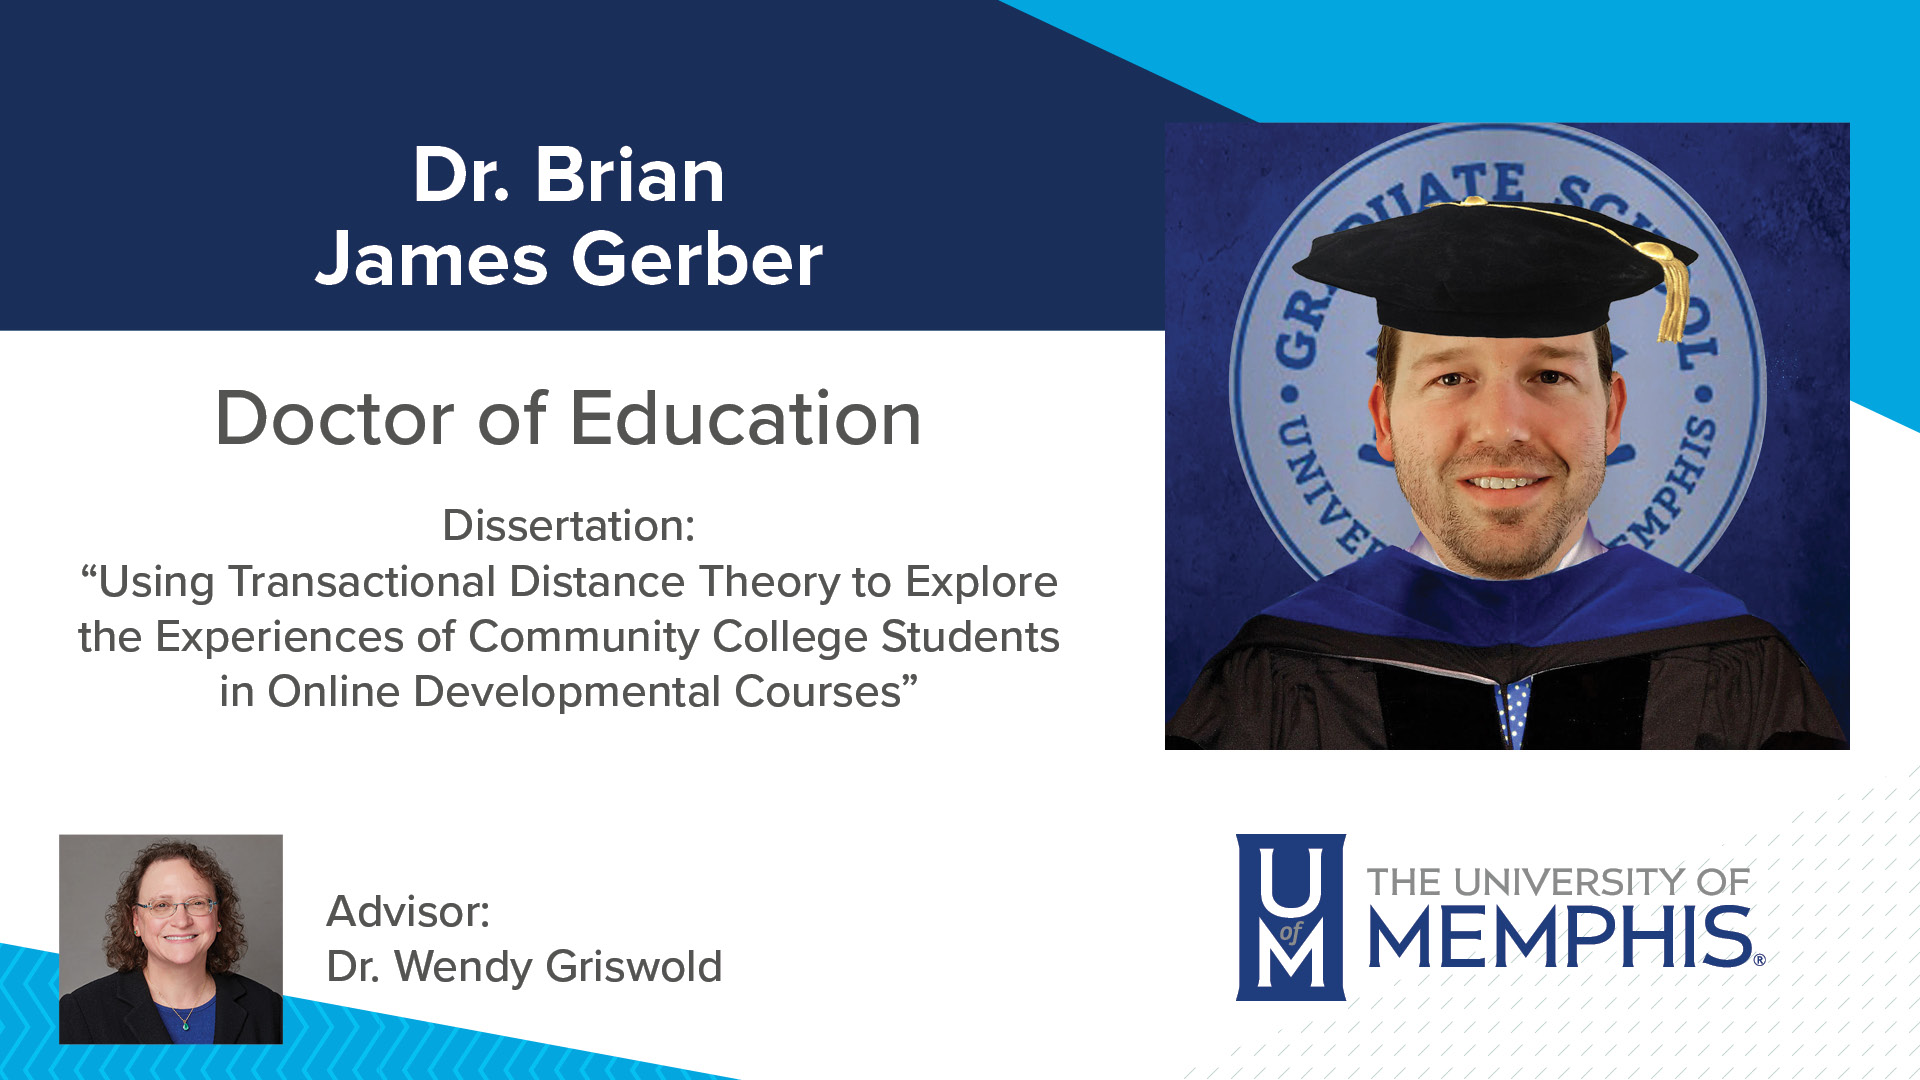 """Dr. Brian James Gerber Dissertation: """"Using Transactional Distance Theory to Explore the Experiences of Community College Students in Online Developmental Courses """" Major Professor: Dr. Wendy Griswold"""